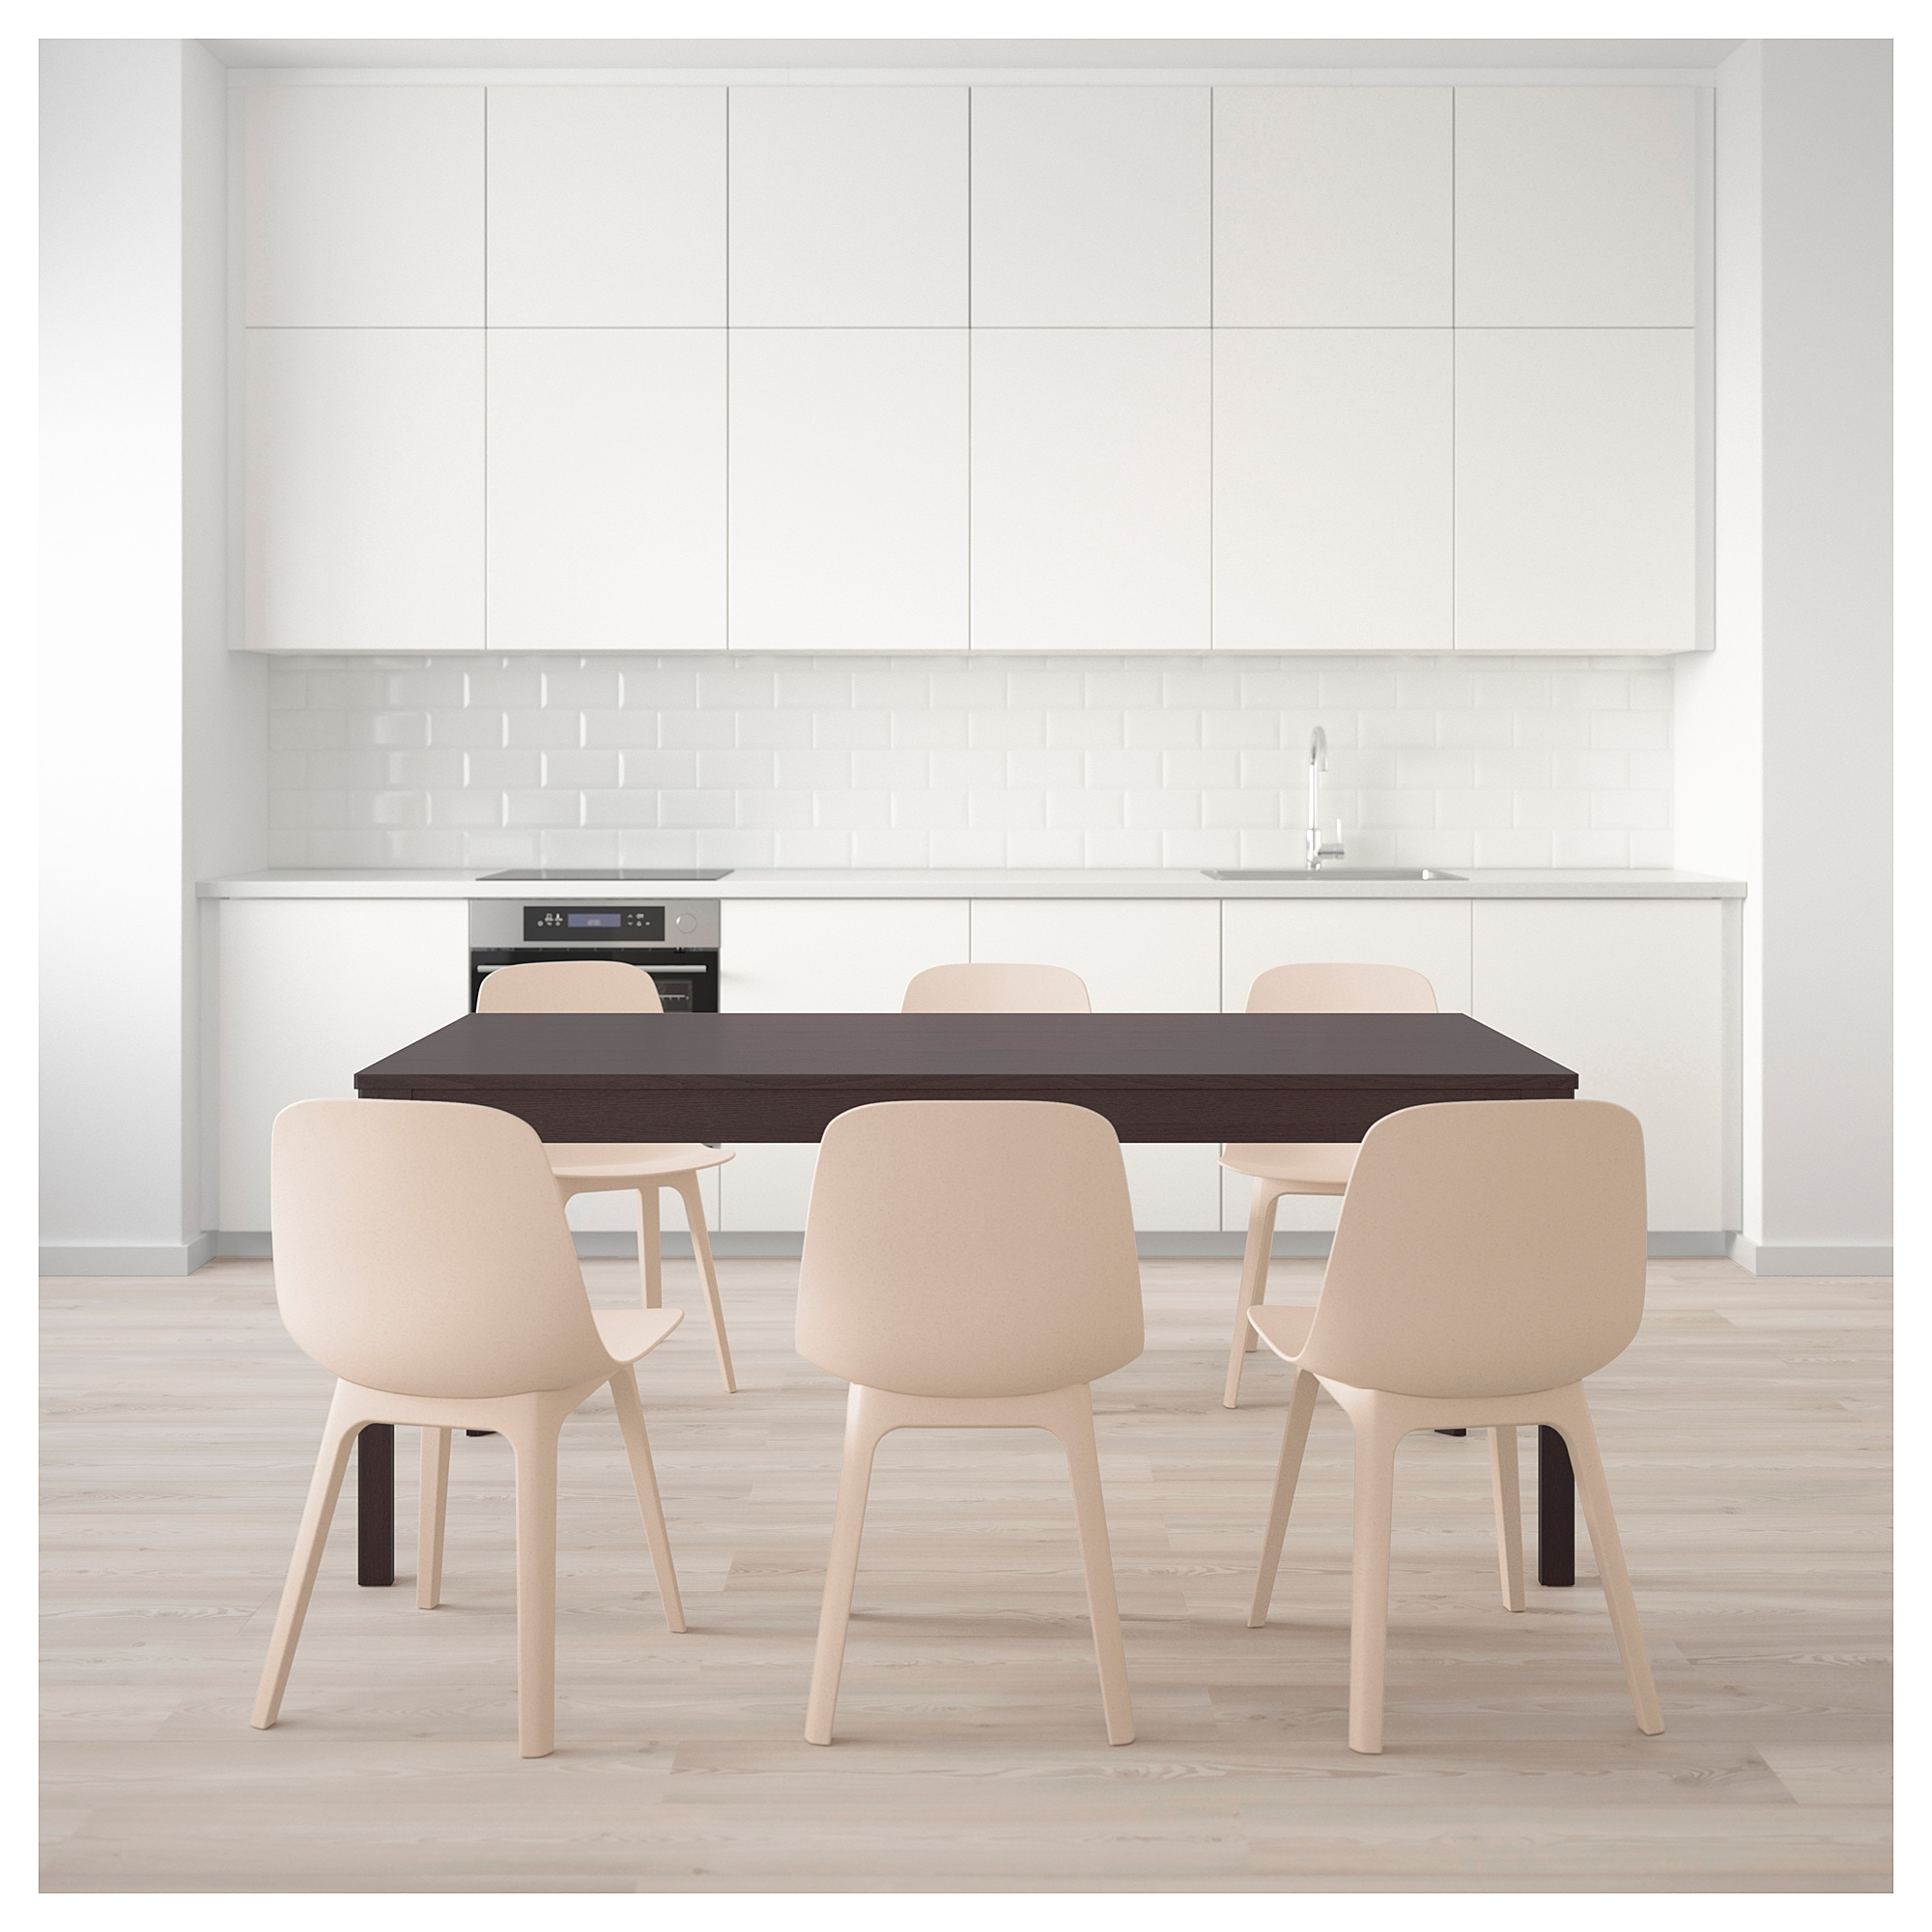 1c8b20664e1 EKEDALEN   ODGER Table and 6 chairs - IKEA